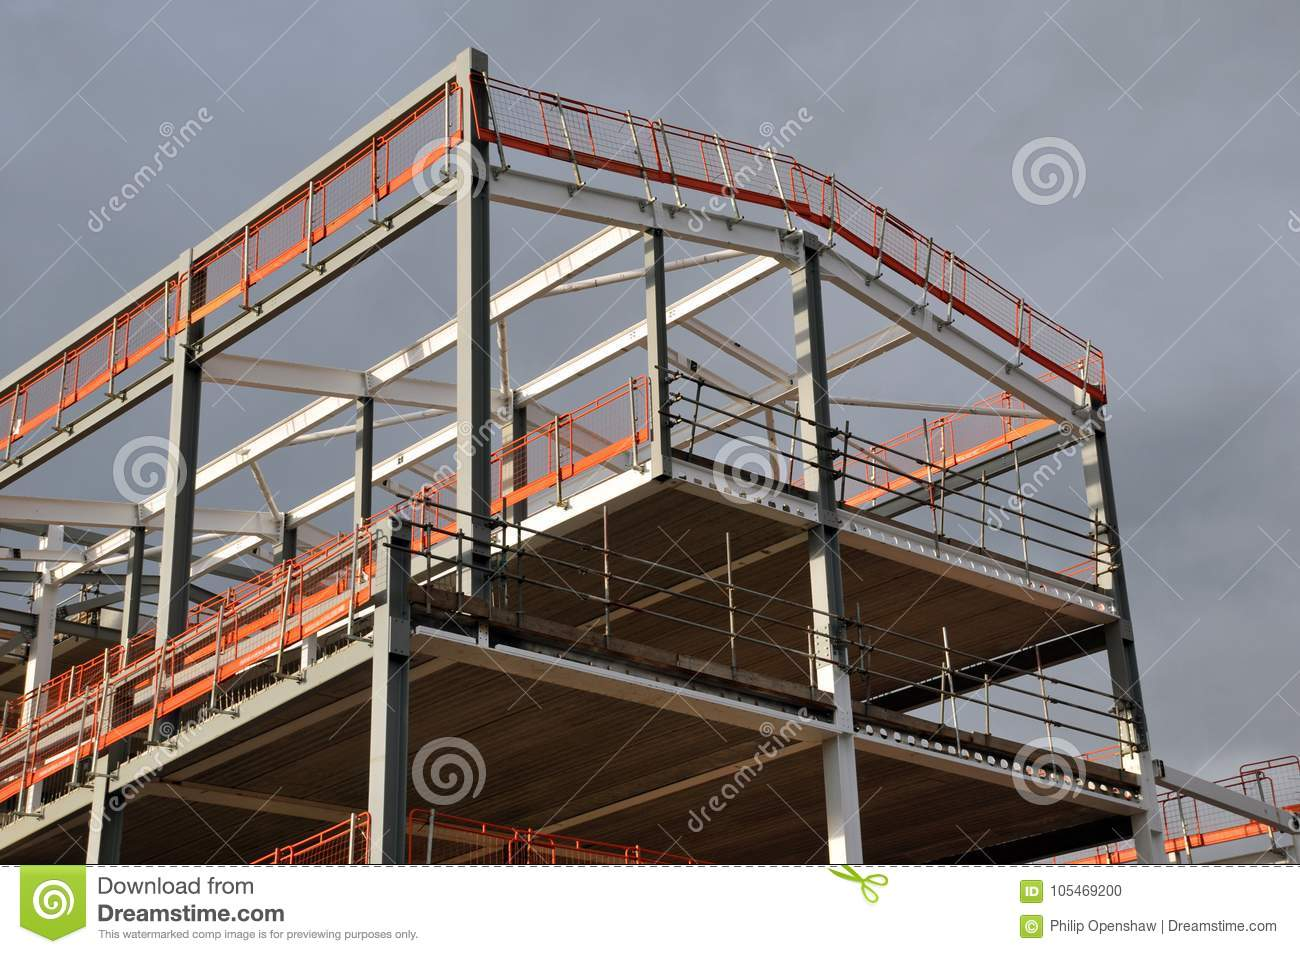 Steel Frame And Roof Of A Building Under Construction Stock Photo ...